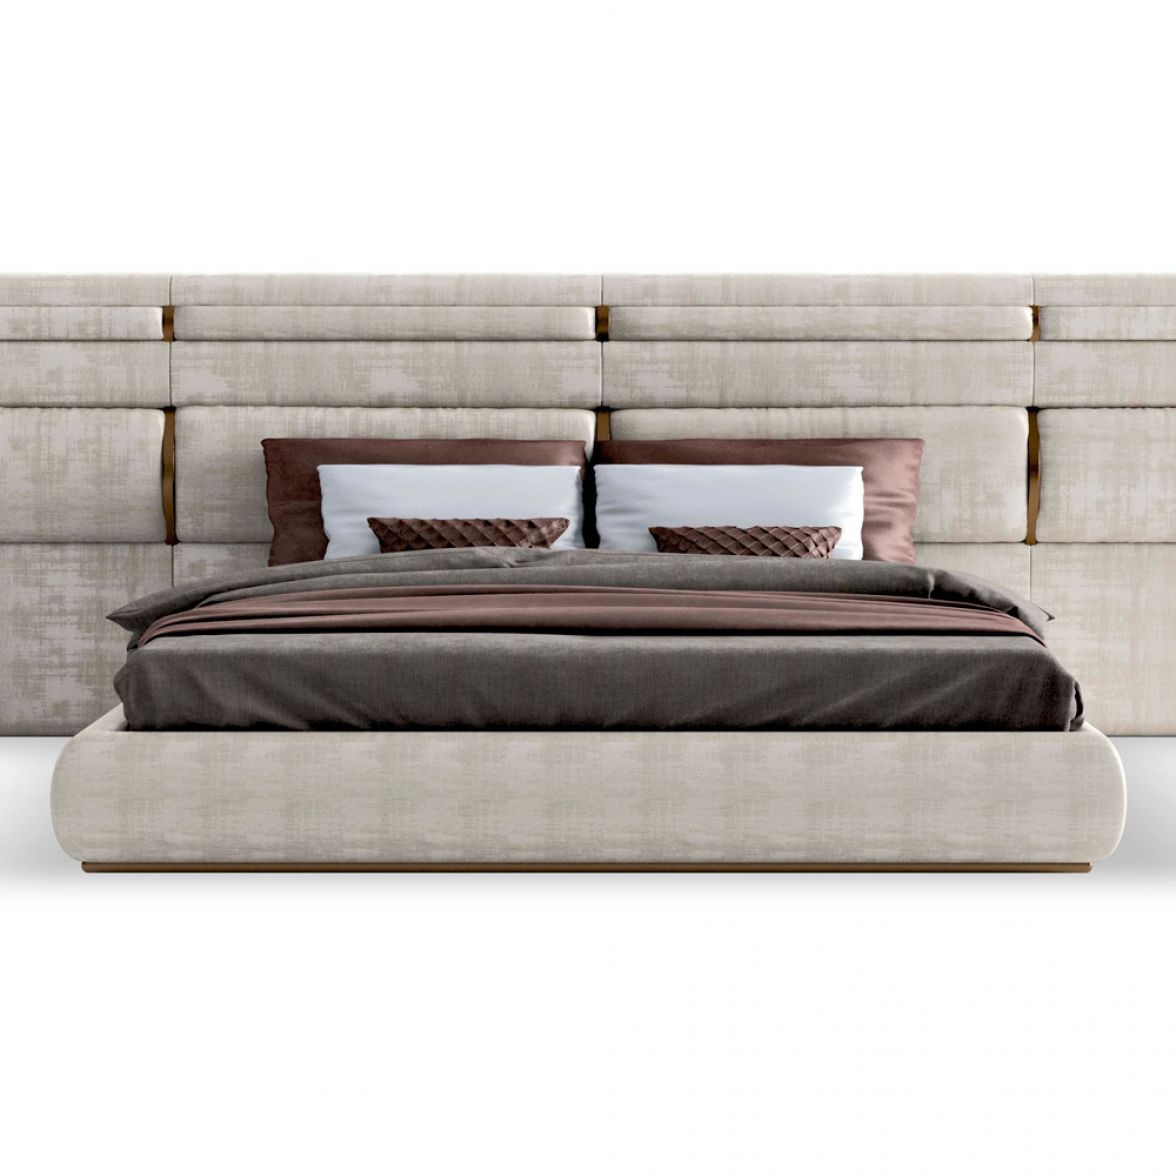 Trilogy XL bed